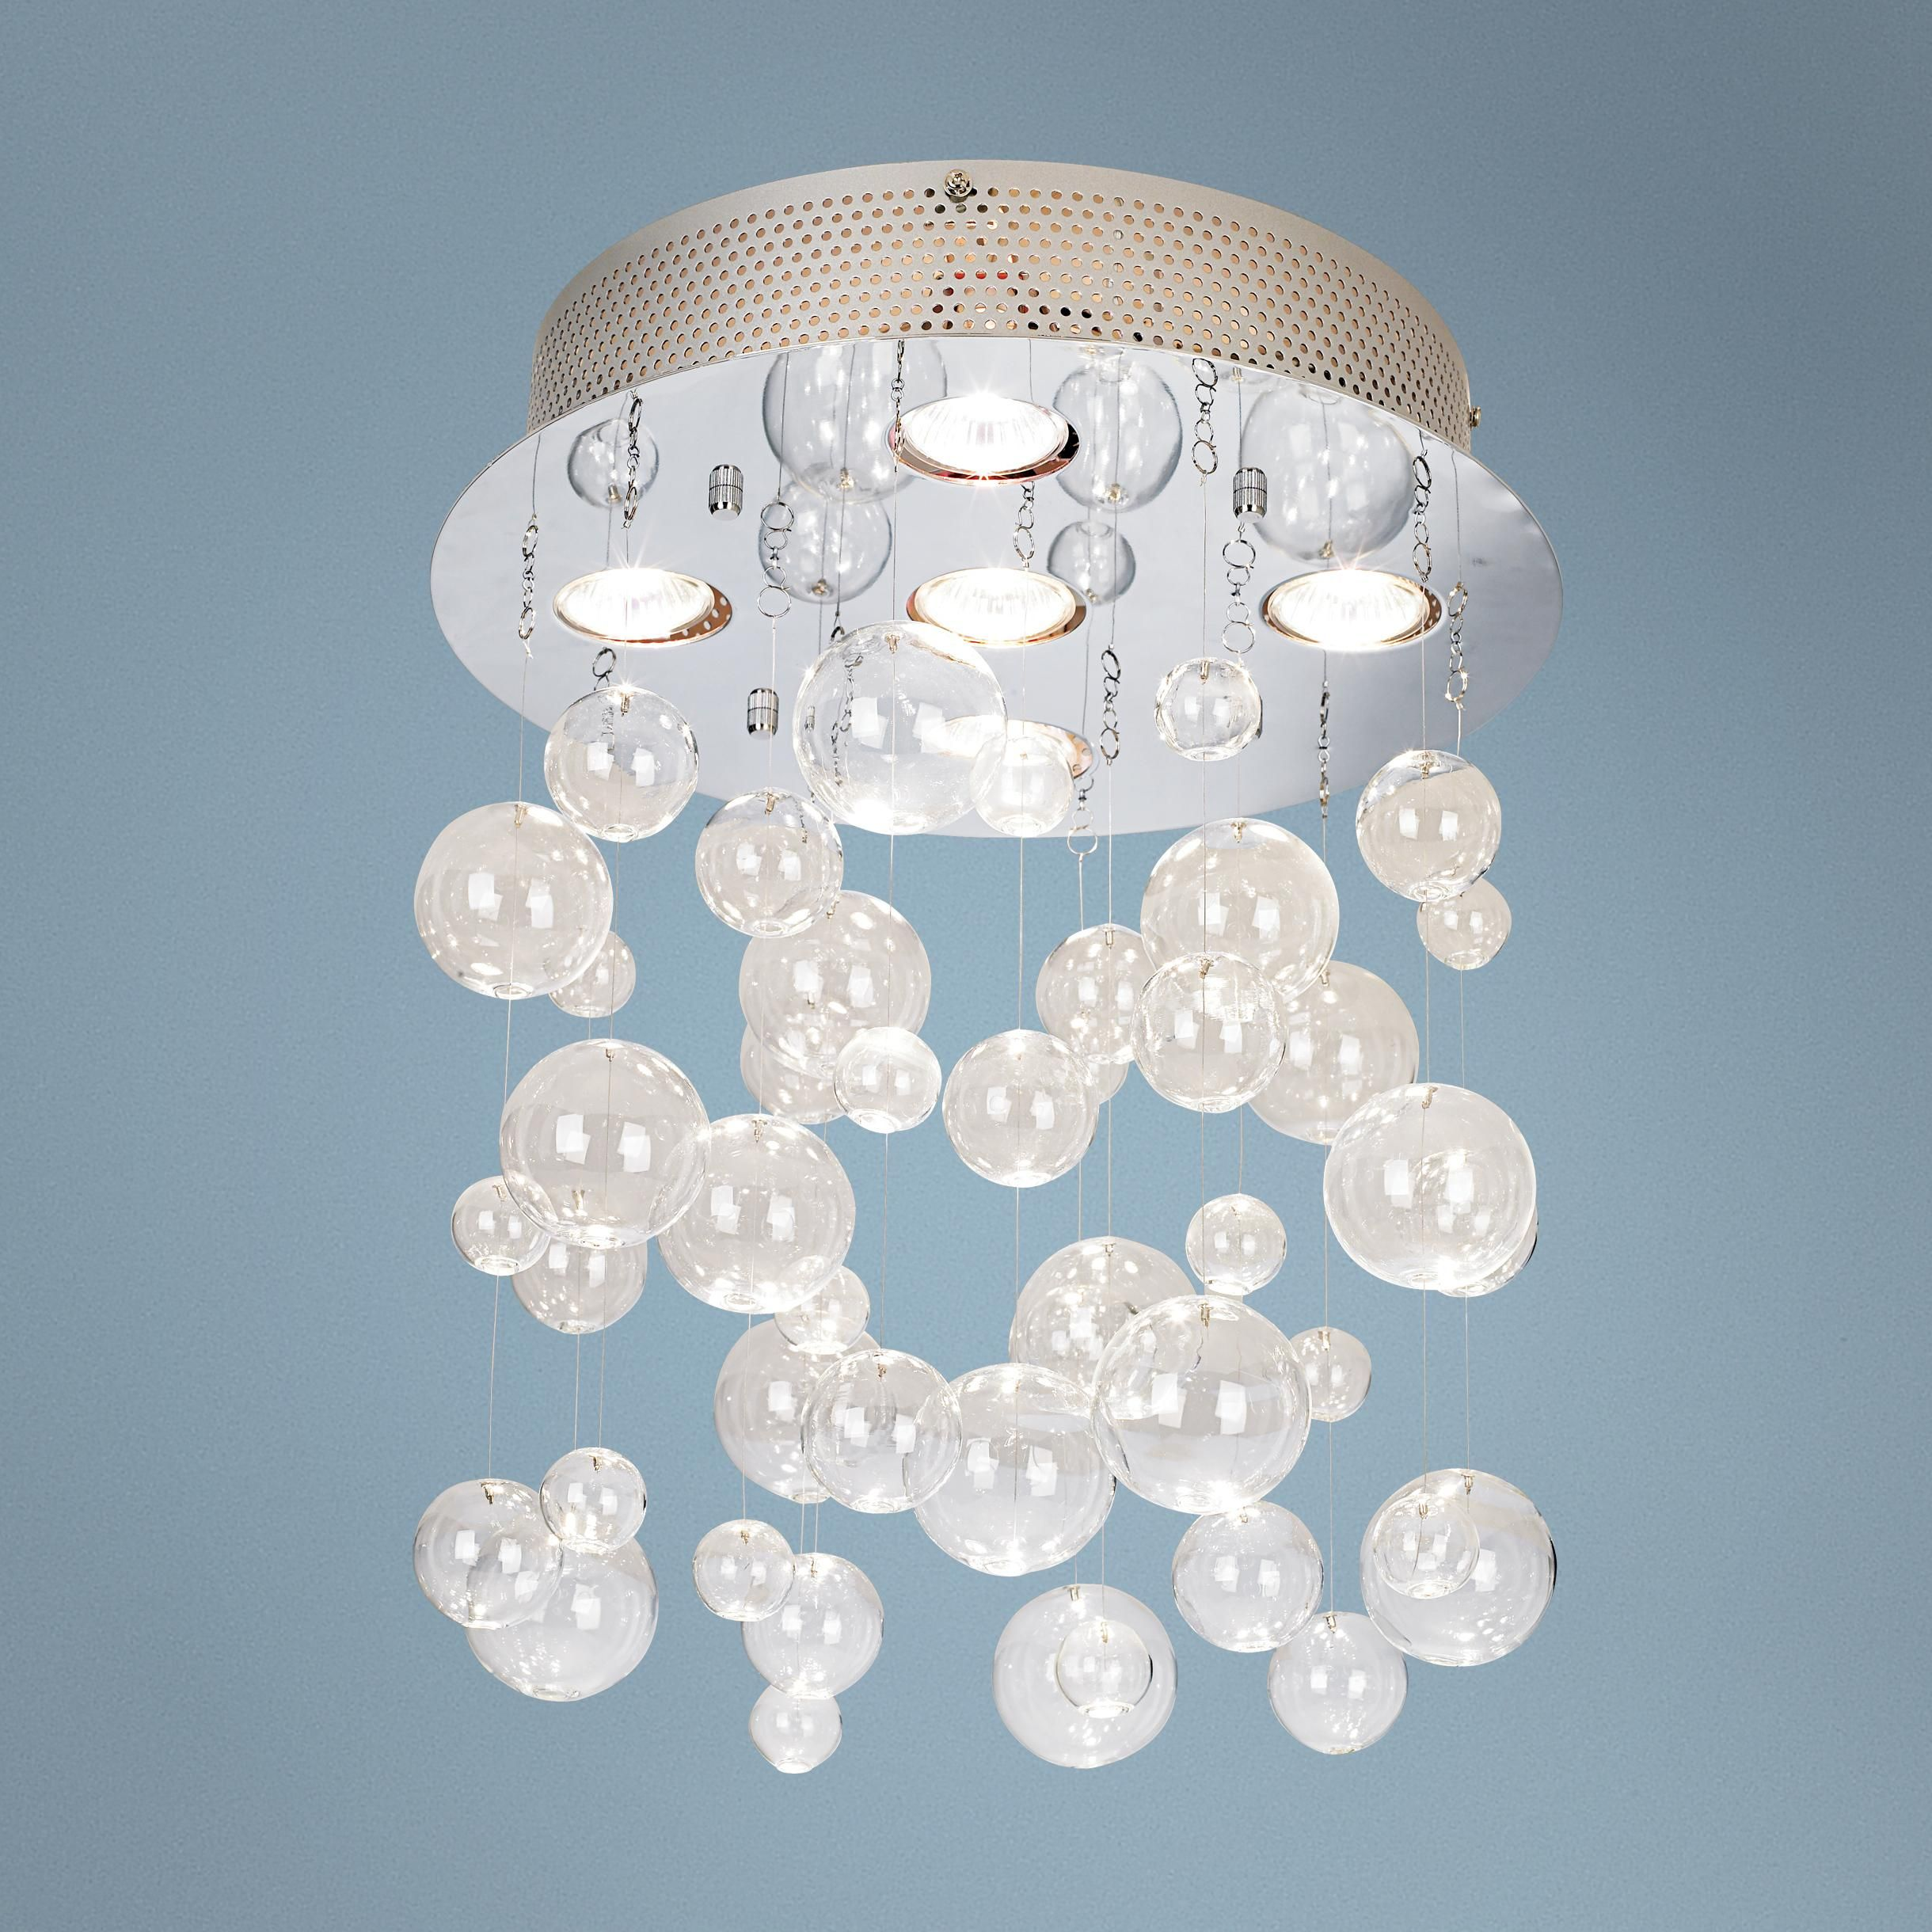 Possini euro bubbles 13 34 wide ceiling light fixture lampsplus possini euro bubbles 13 wide ceiling light fixture bubble light for the bath arubaitofo Image collections